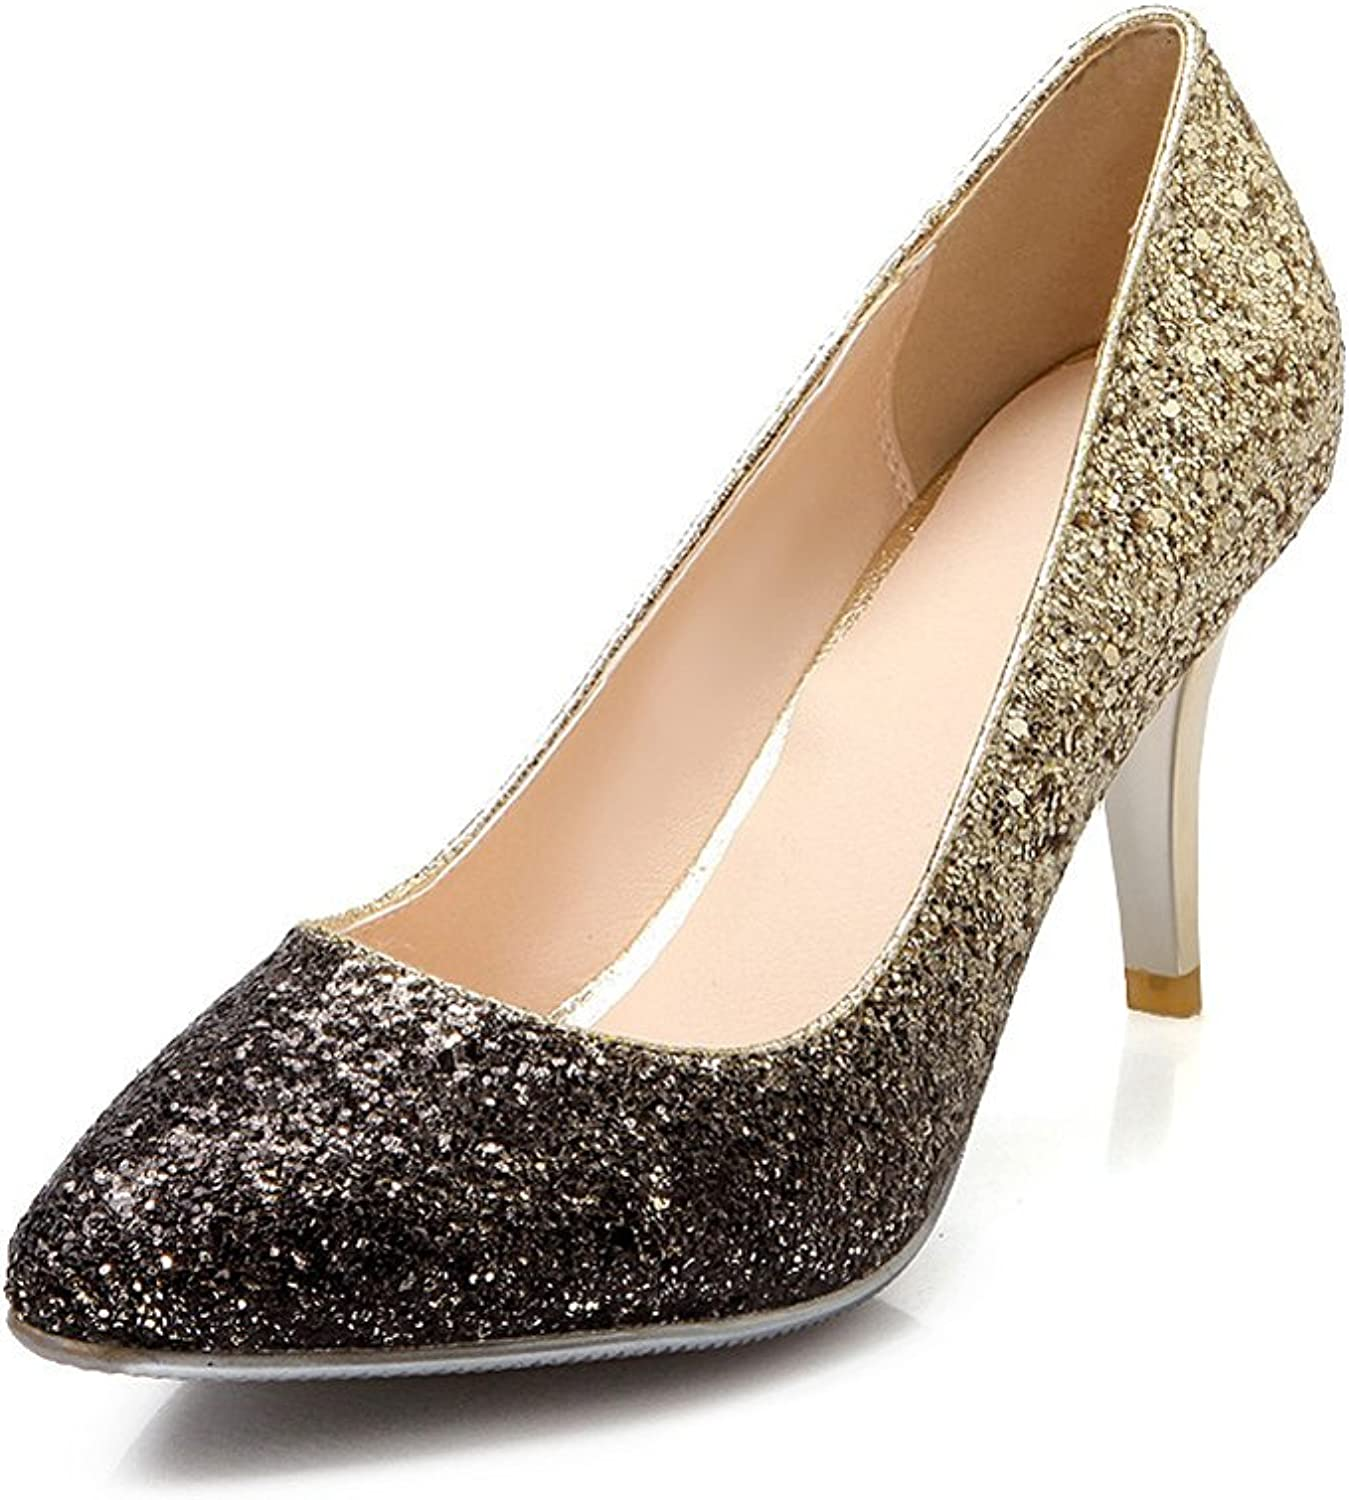 Lucksender Womens Fashion Pointed Toe High Heel Party Wedding Dress Pumps with Sparkling Sequins